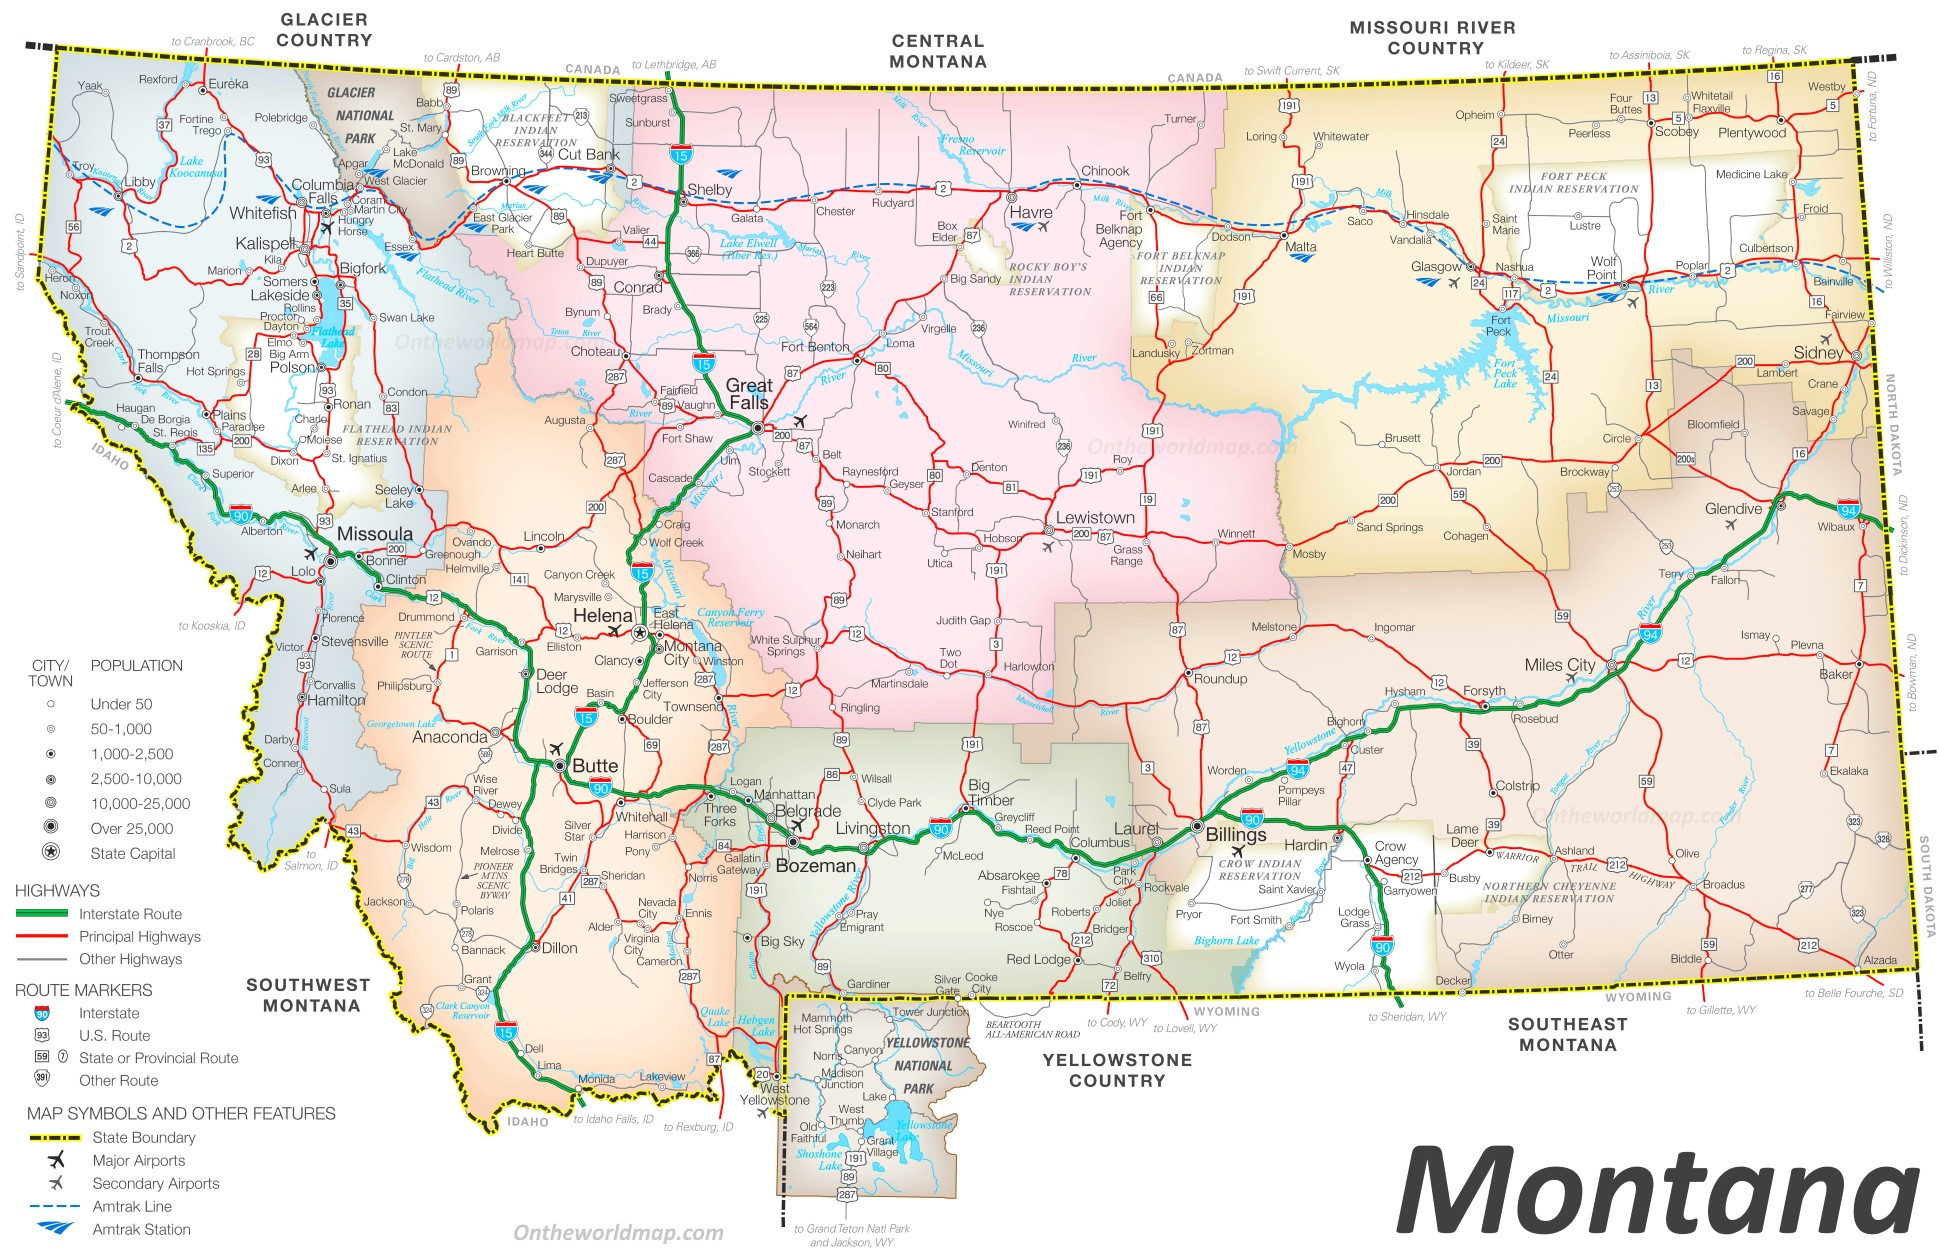 Montana State Maps USA Maps Of Montana MT - Montana state usa map